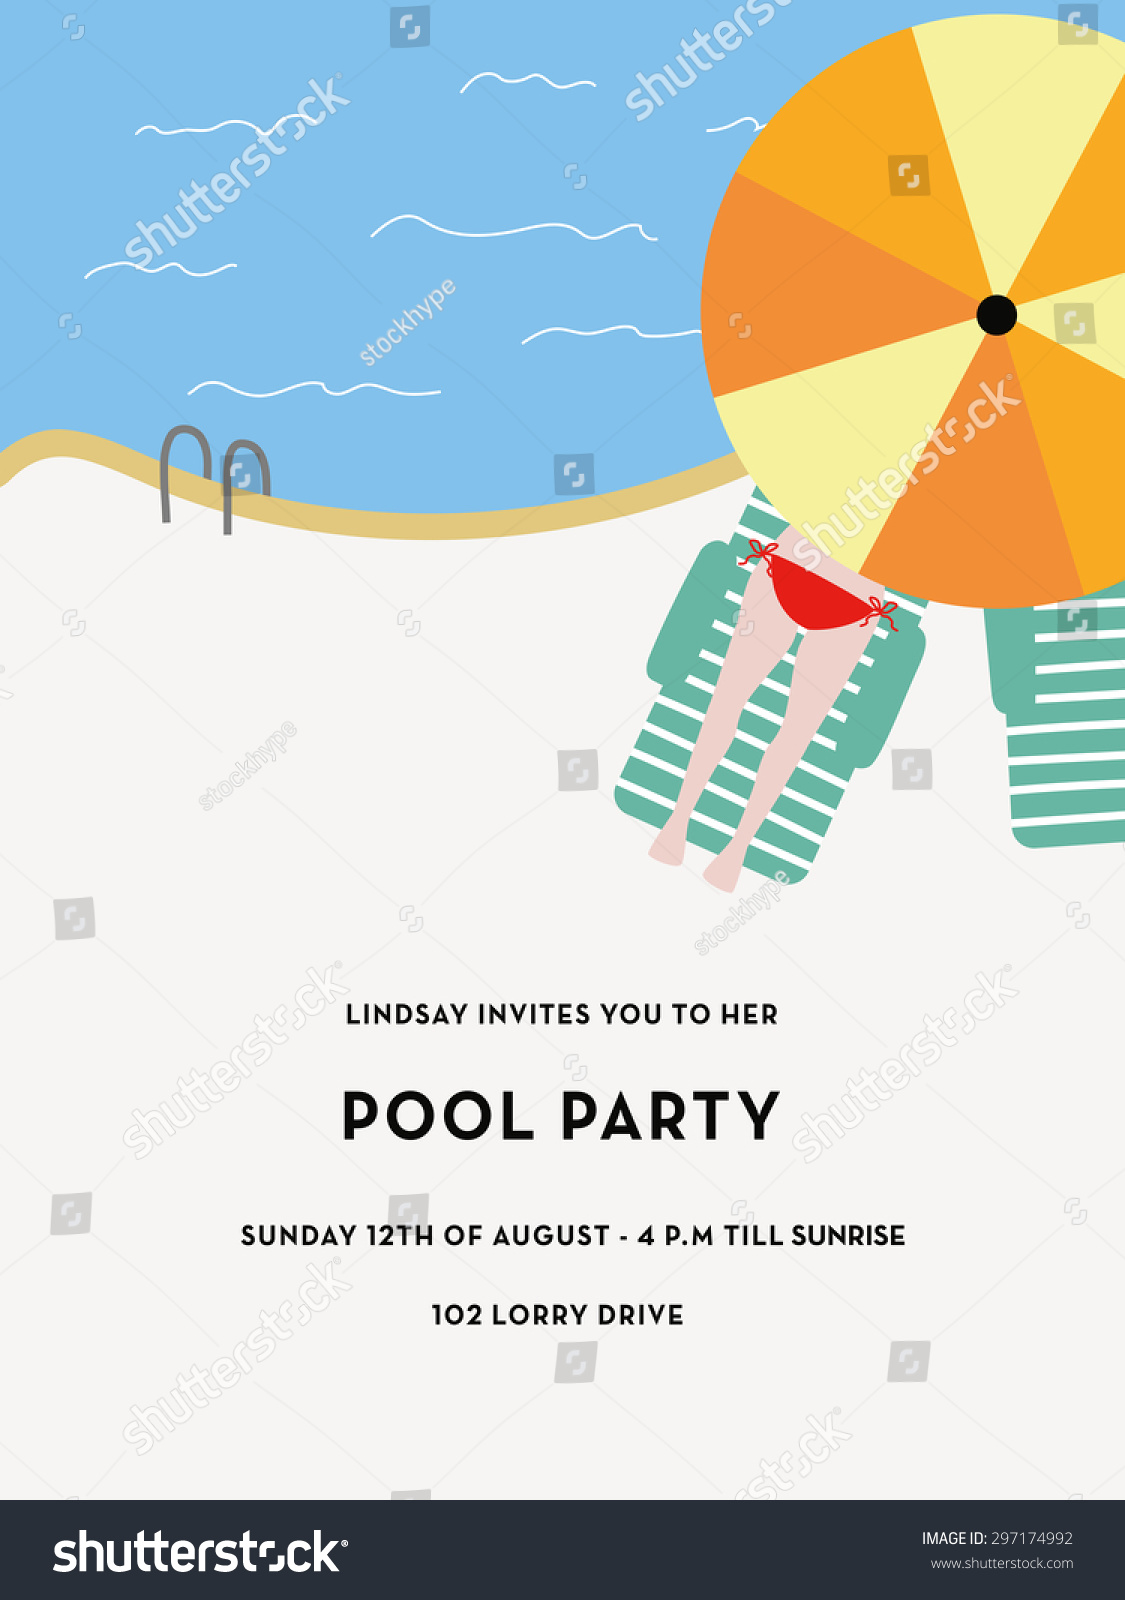 Pool Party Invitation Card Pool Girl Stock Vector 297174992 ...